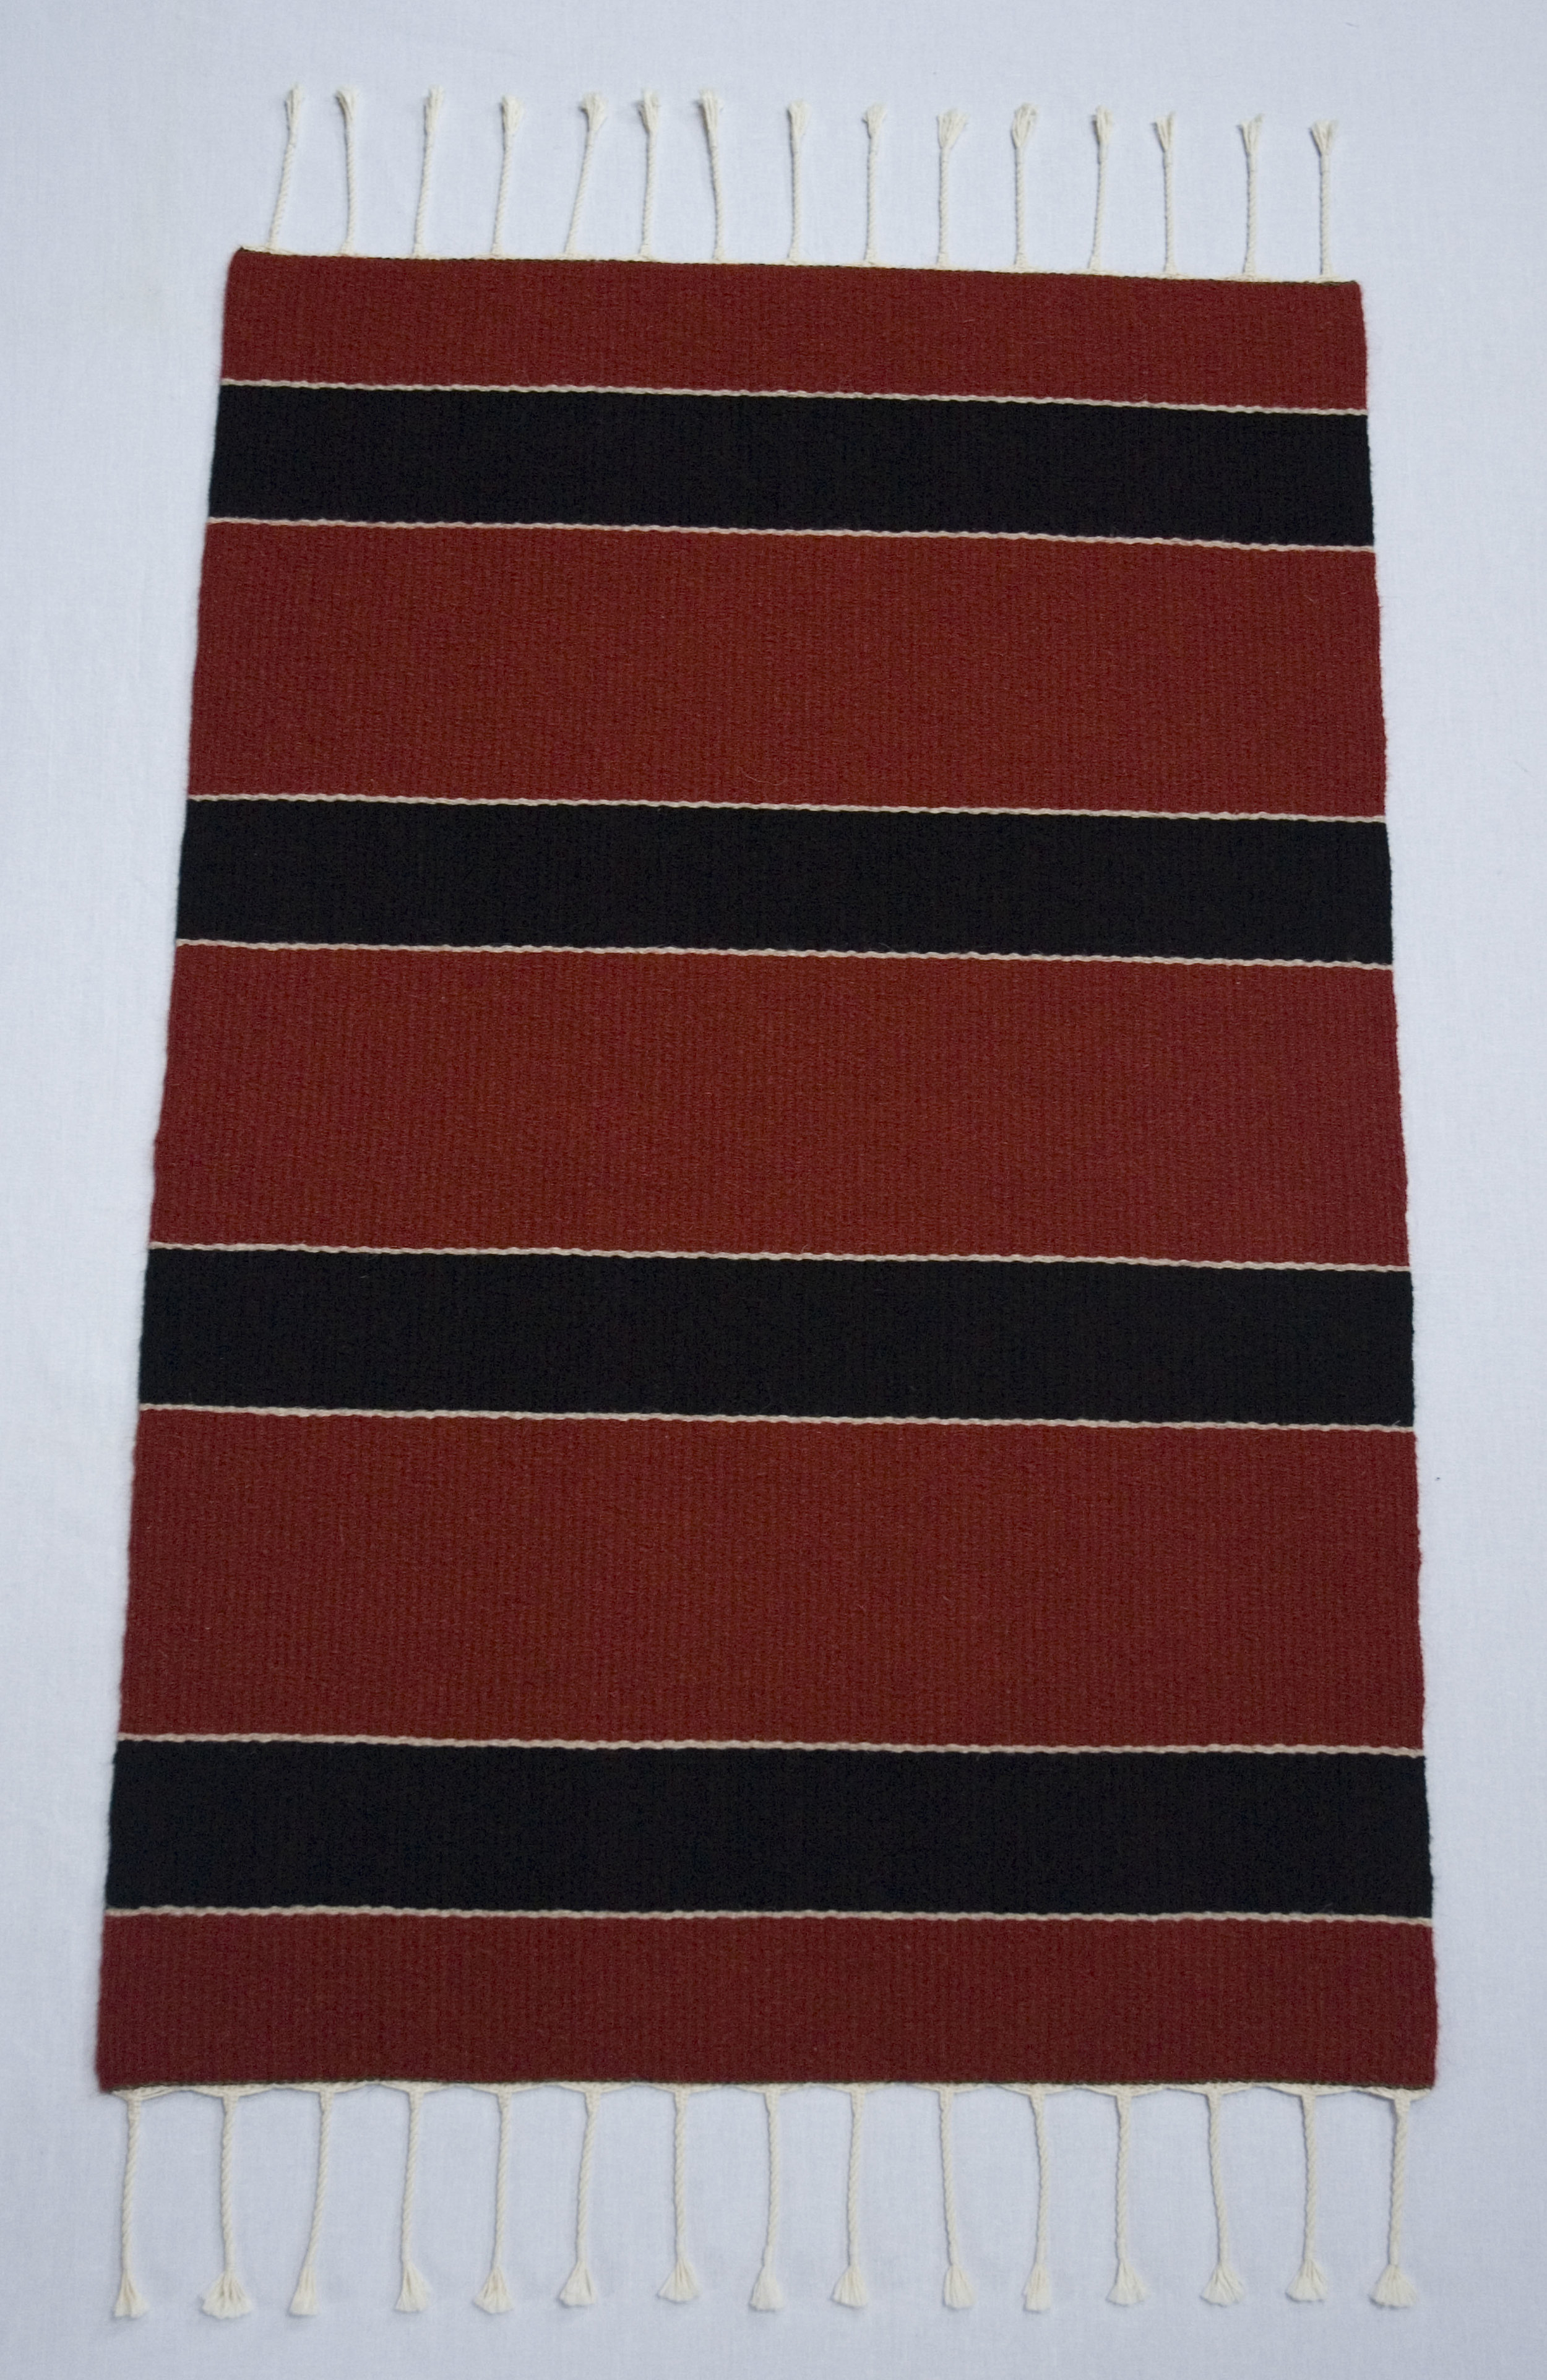 Plain weave rug with red and black stripes